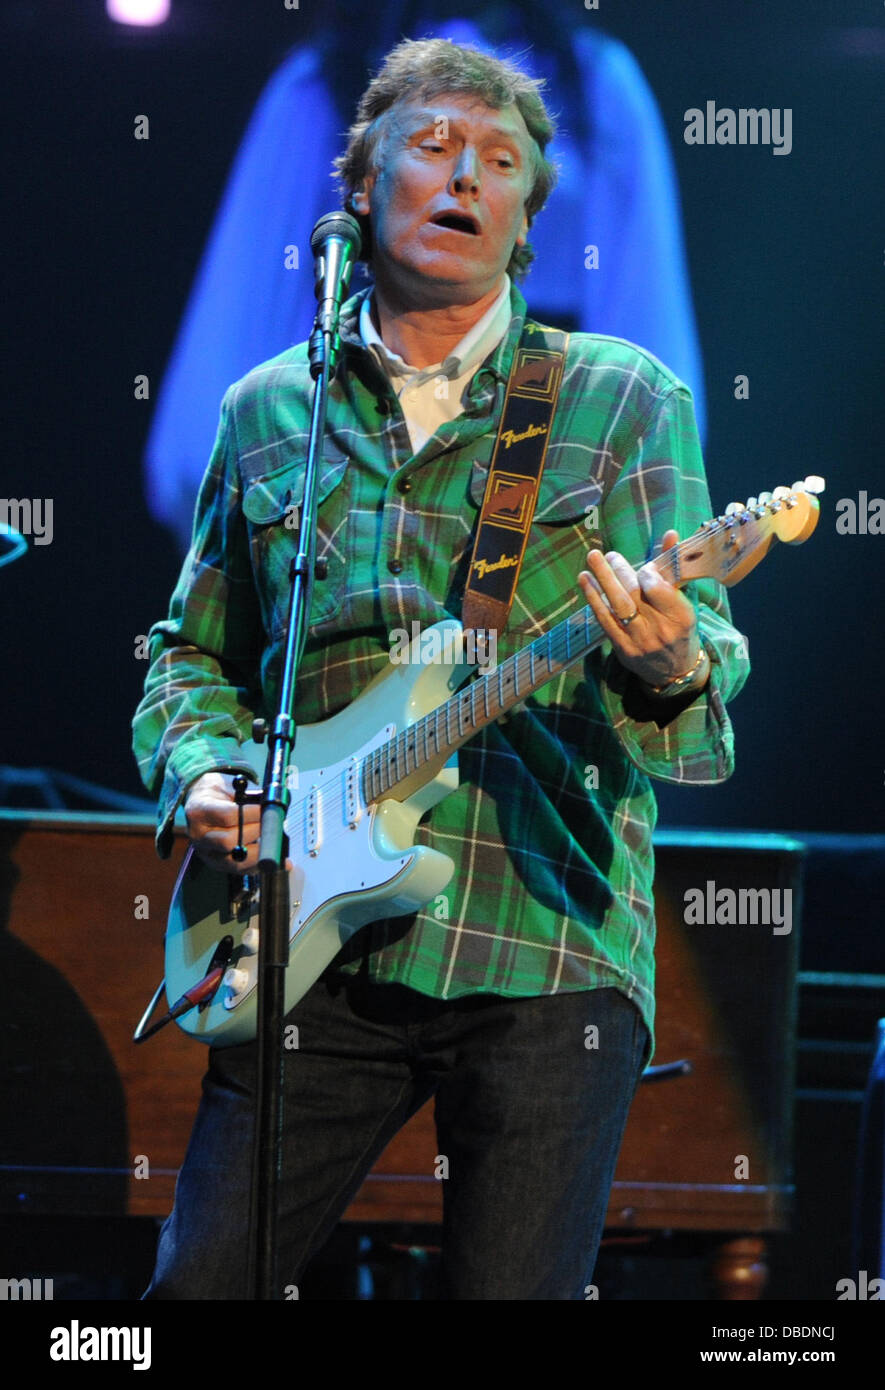 Steve Winwood performs at Royal Albert Hall London, England- 26.05.11 - Stock Image